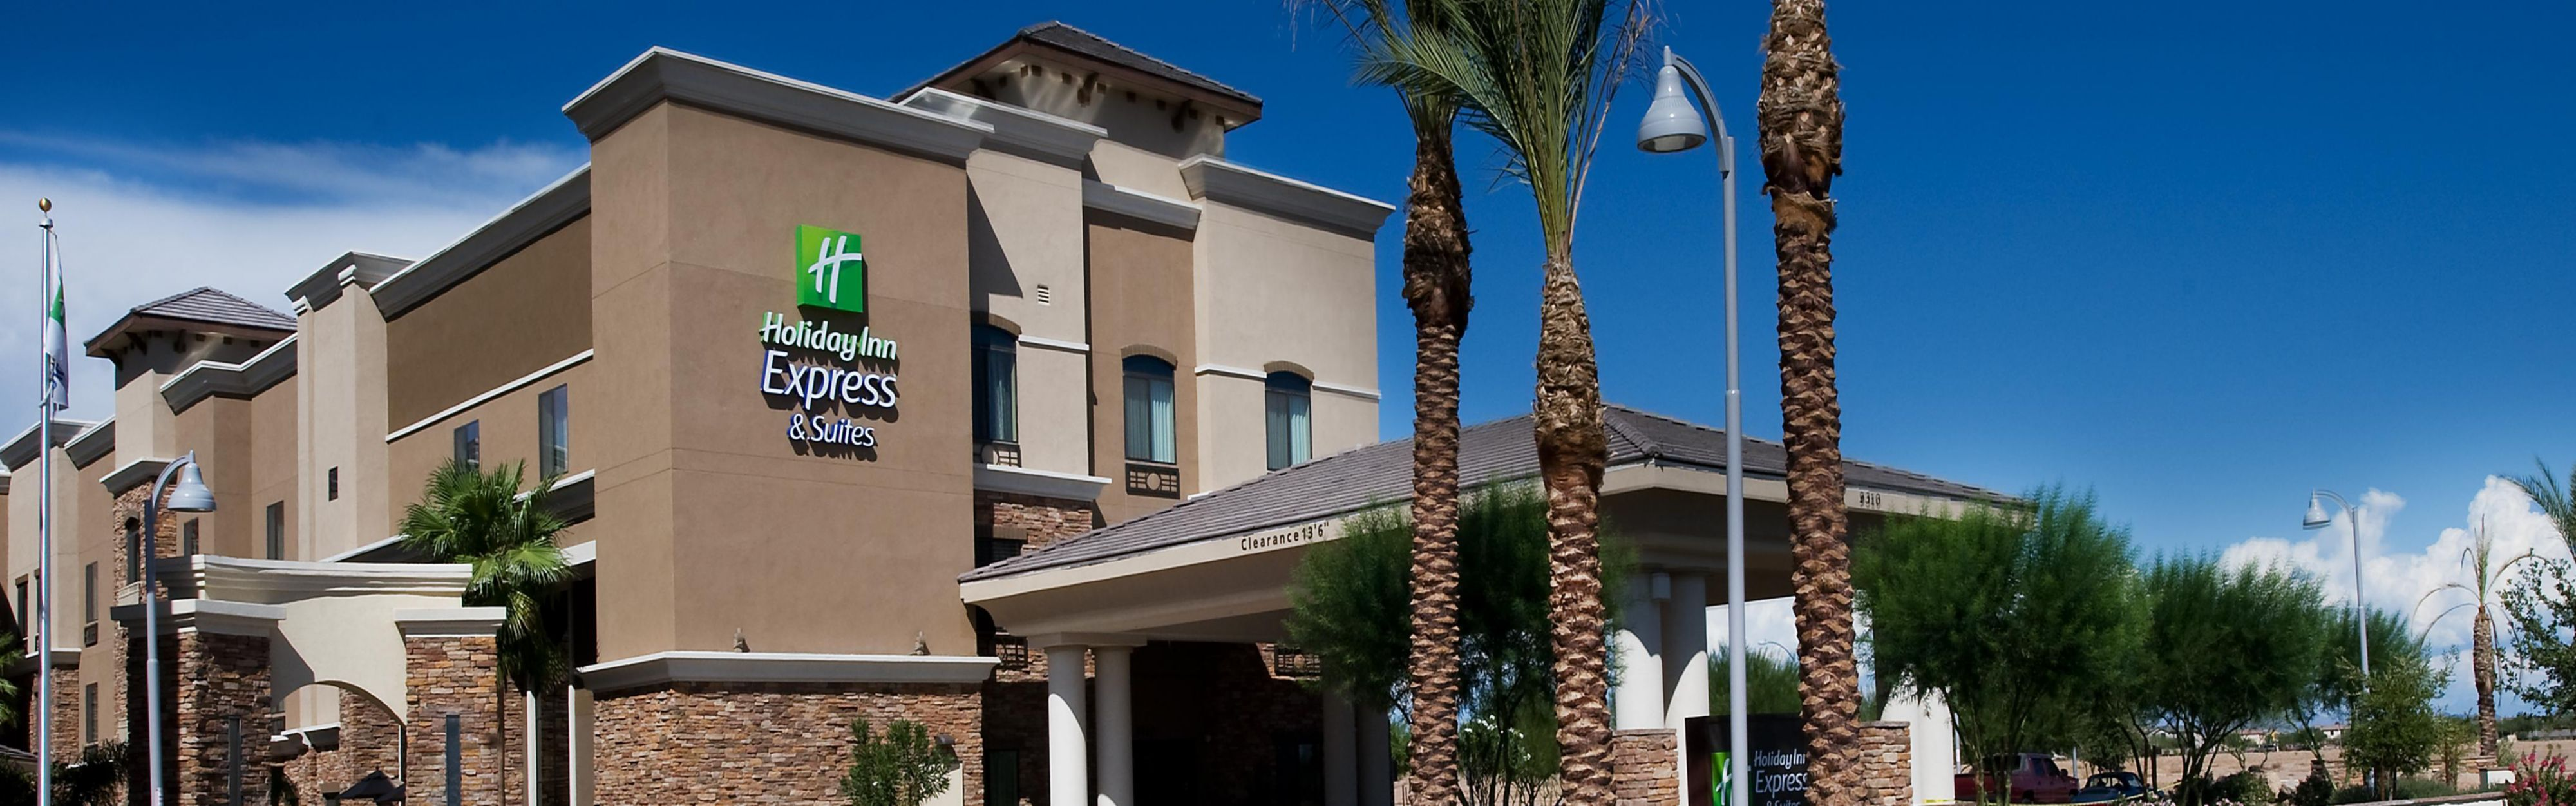 Holiday Inn Express & Suites Phoenix - Glendale Sports Dist image 0